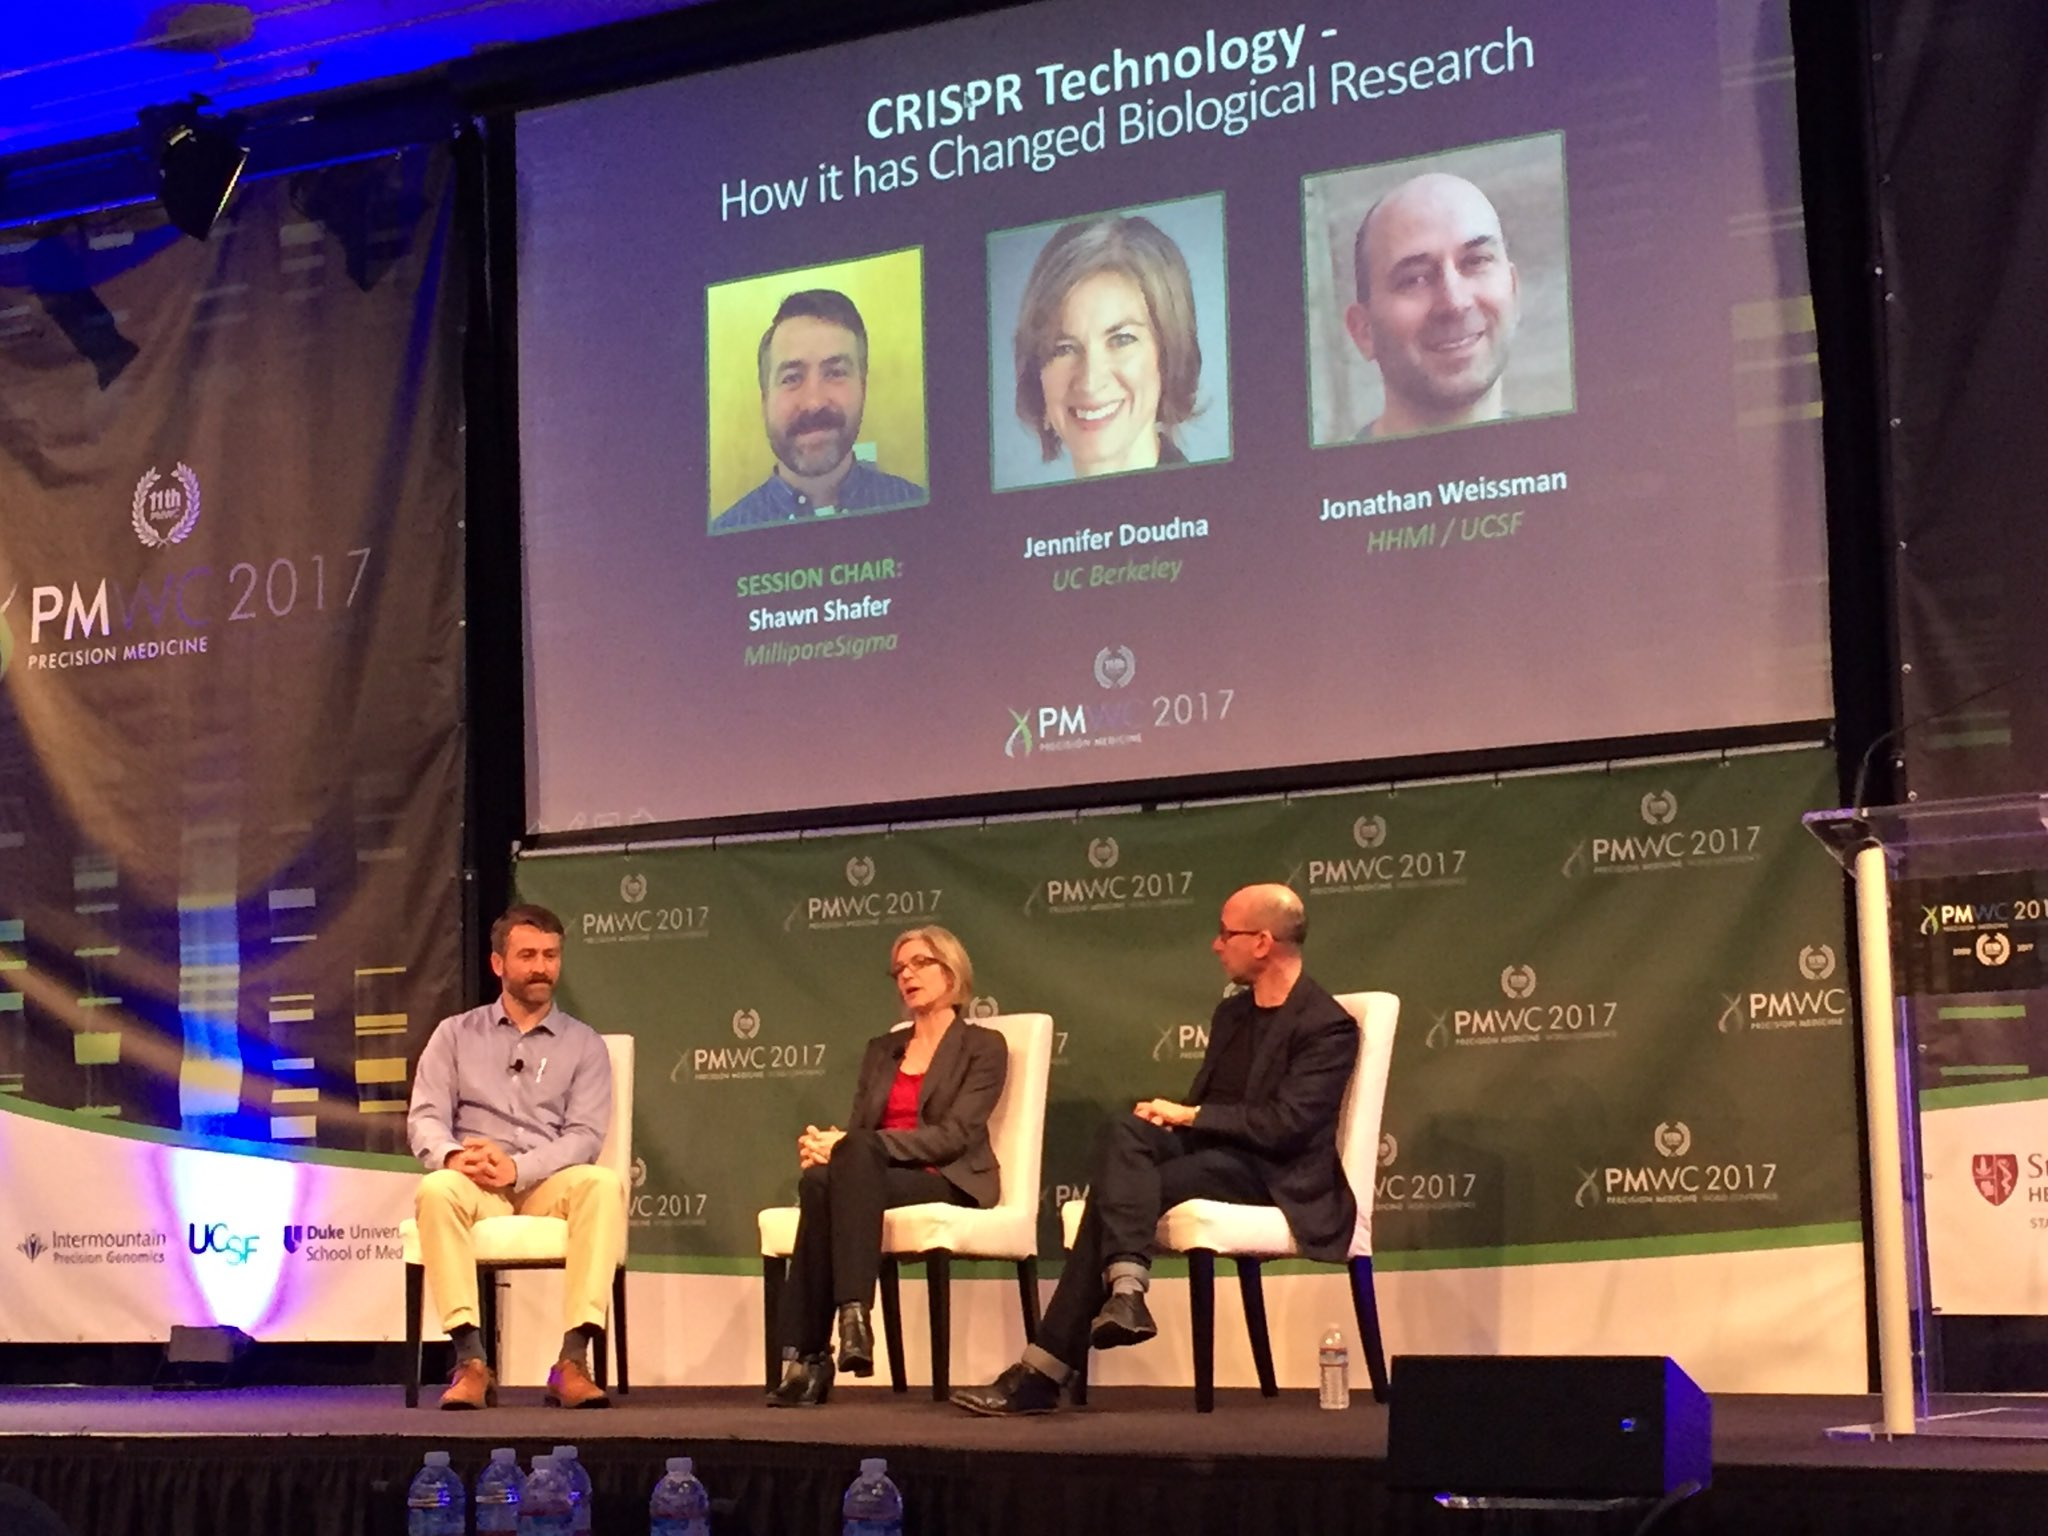 """""""You too can edit the genome"""" Jennifer Doudna @UCBerkeley indiegogo #CRISPR kit. Need to understand how to utilize the technology #PMWC17 https://t.co/OhLTtd9NMq"""